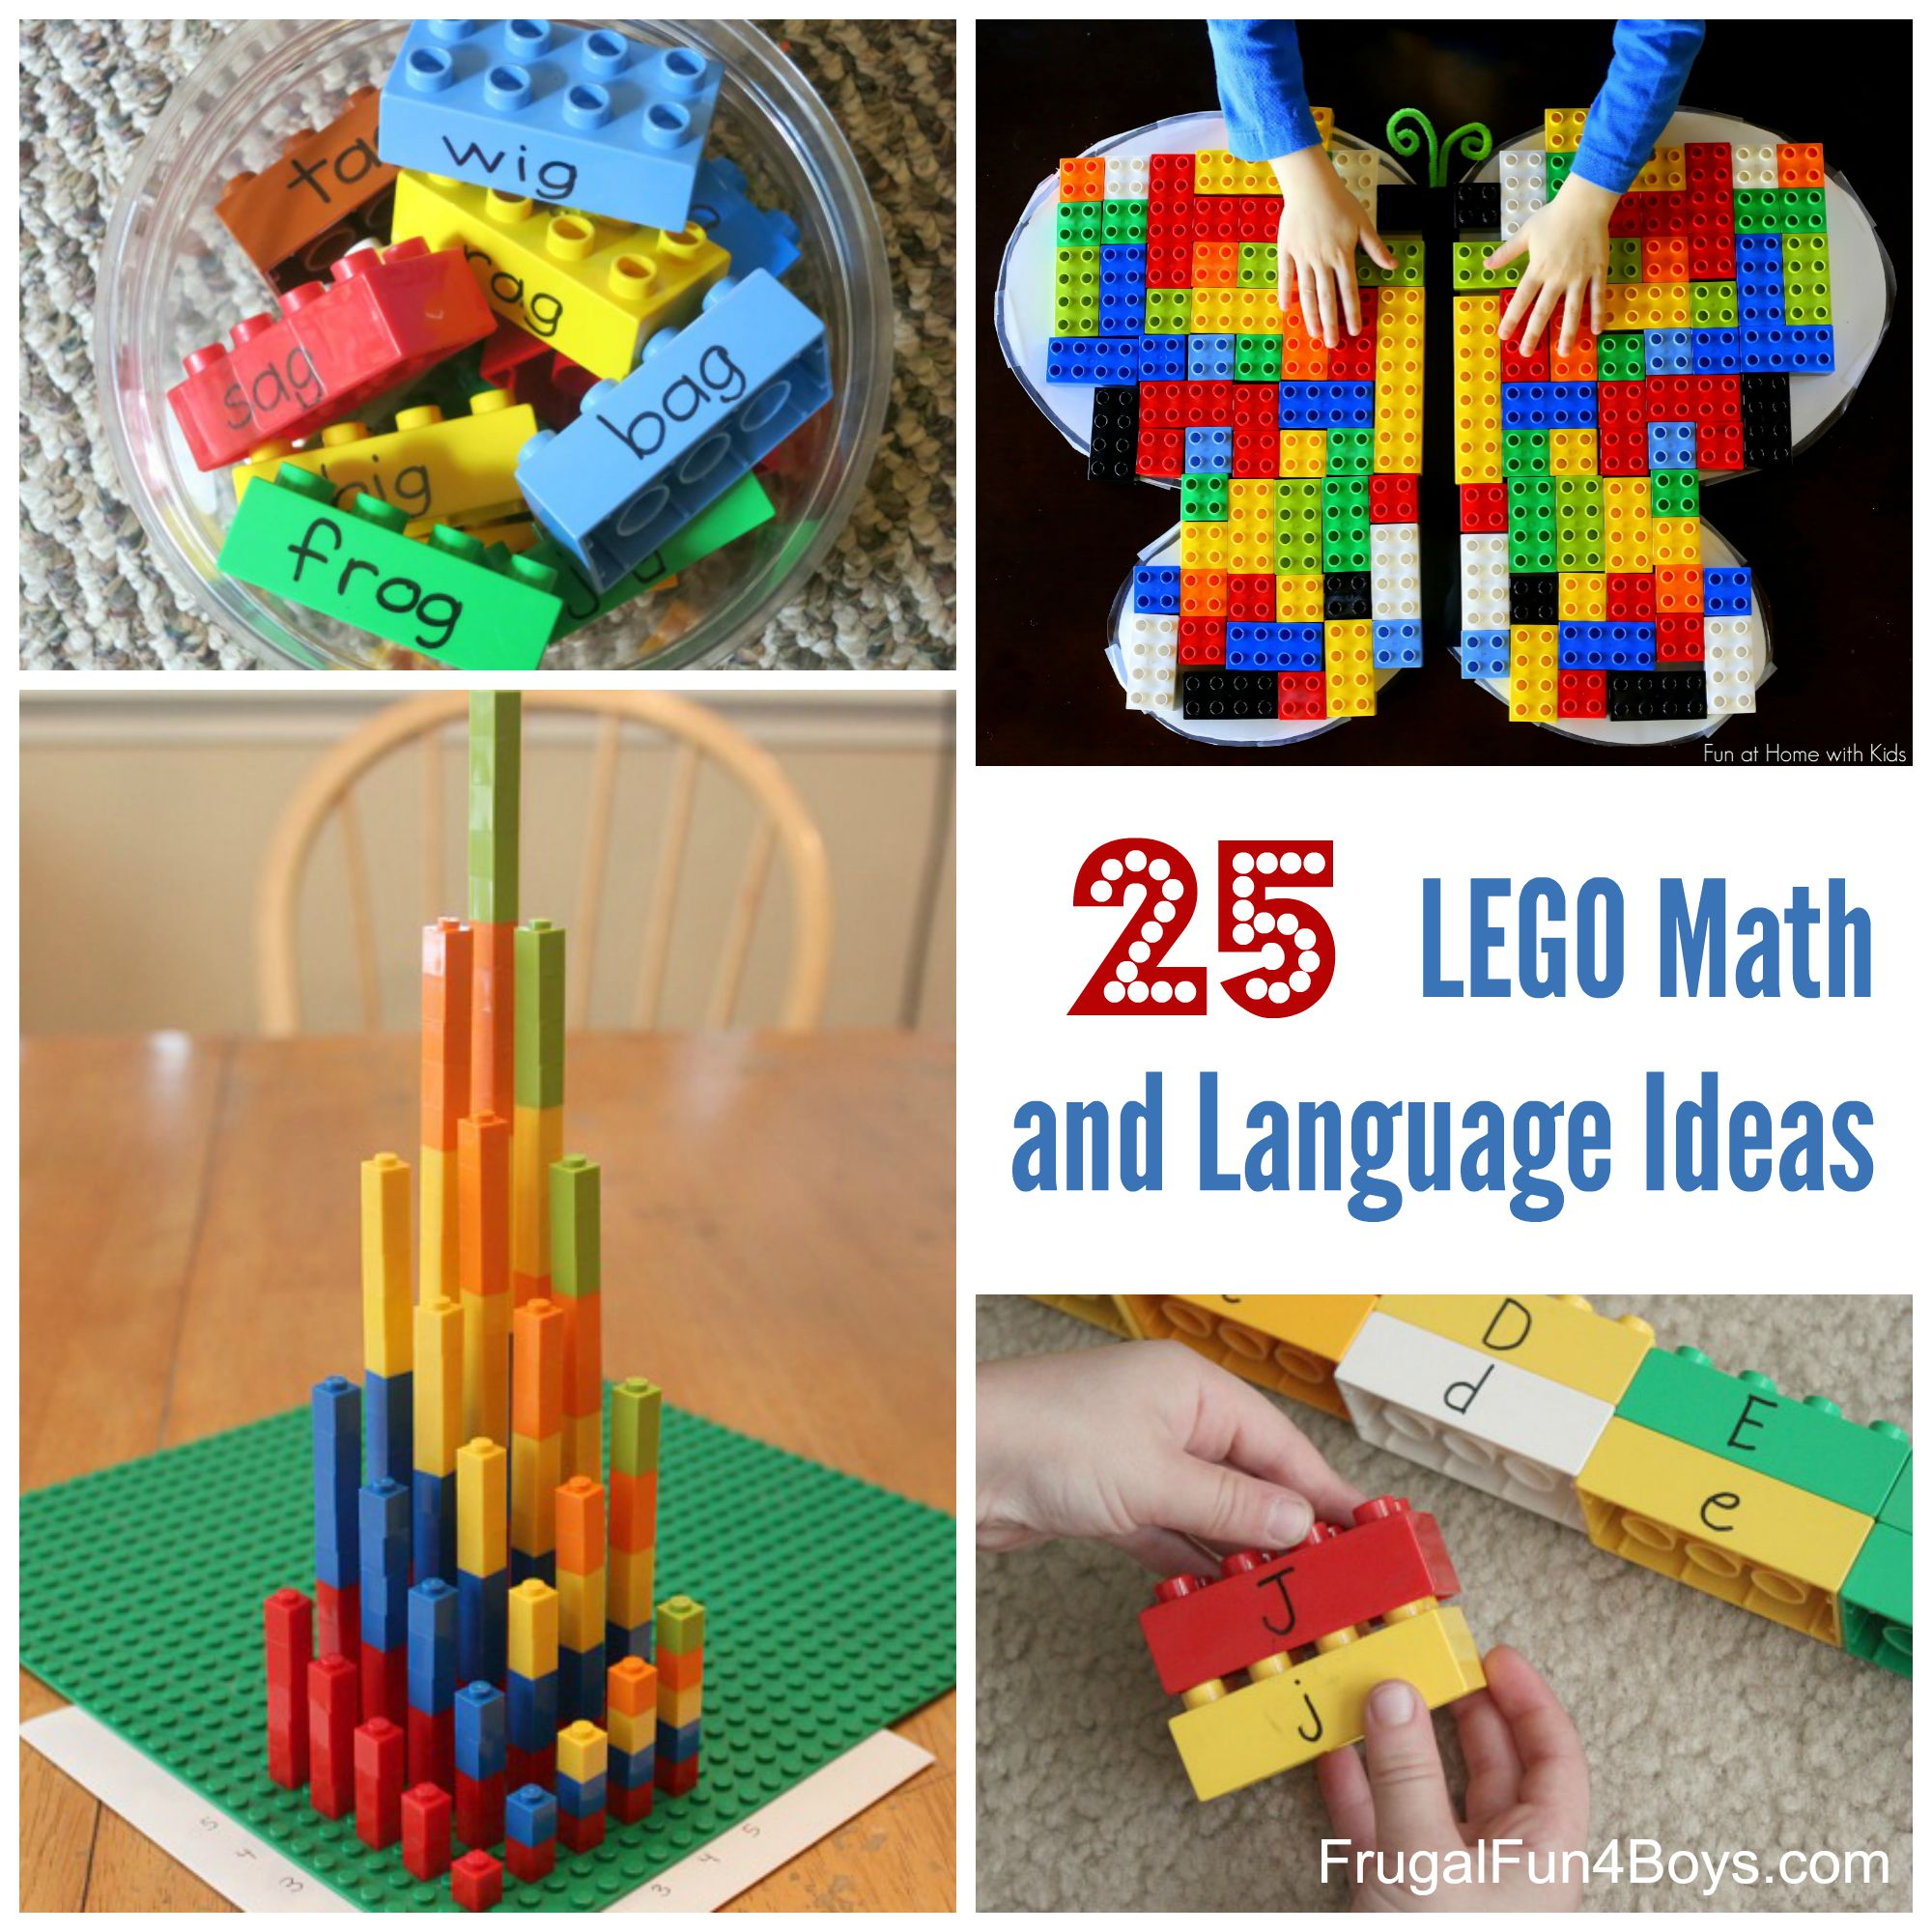 25+ LEGO Math and Language Learning Ideas